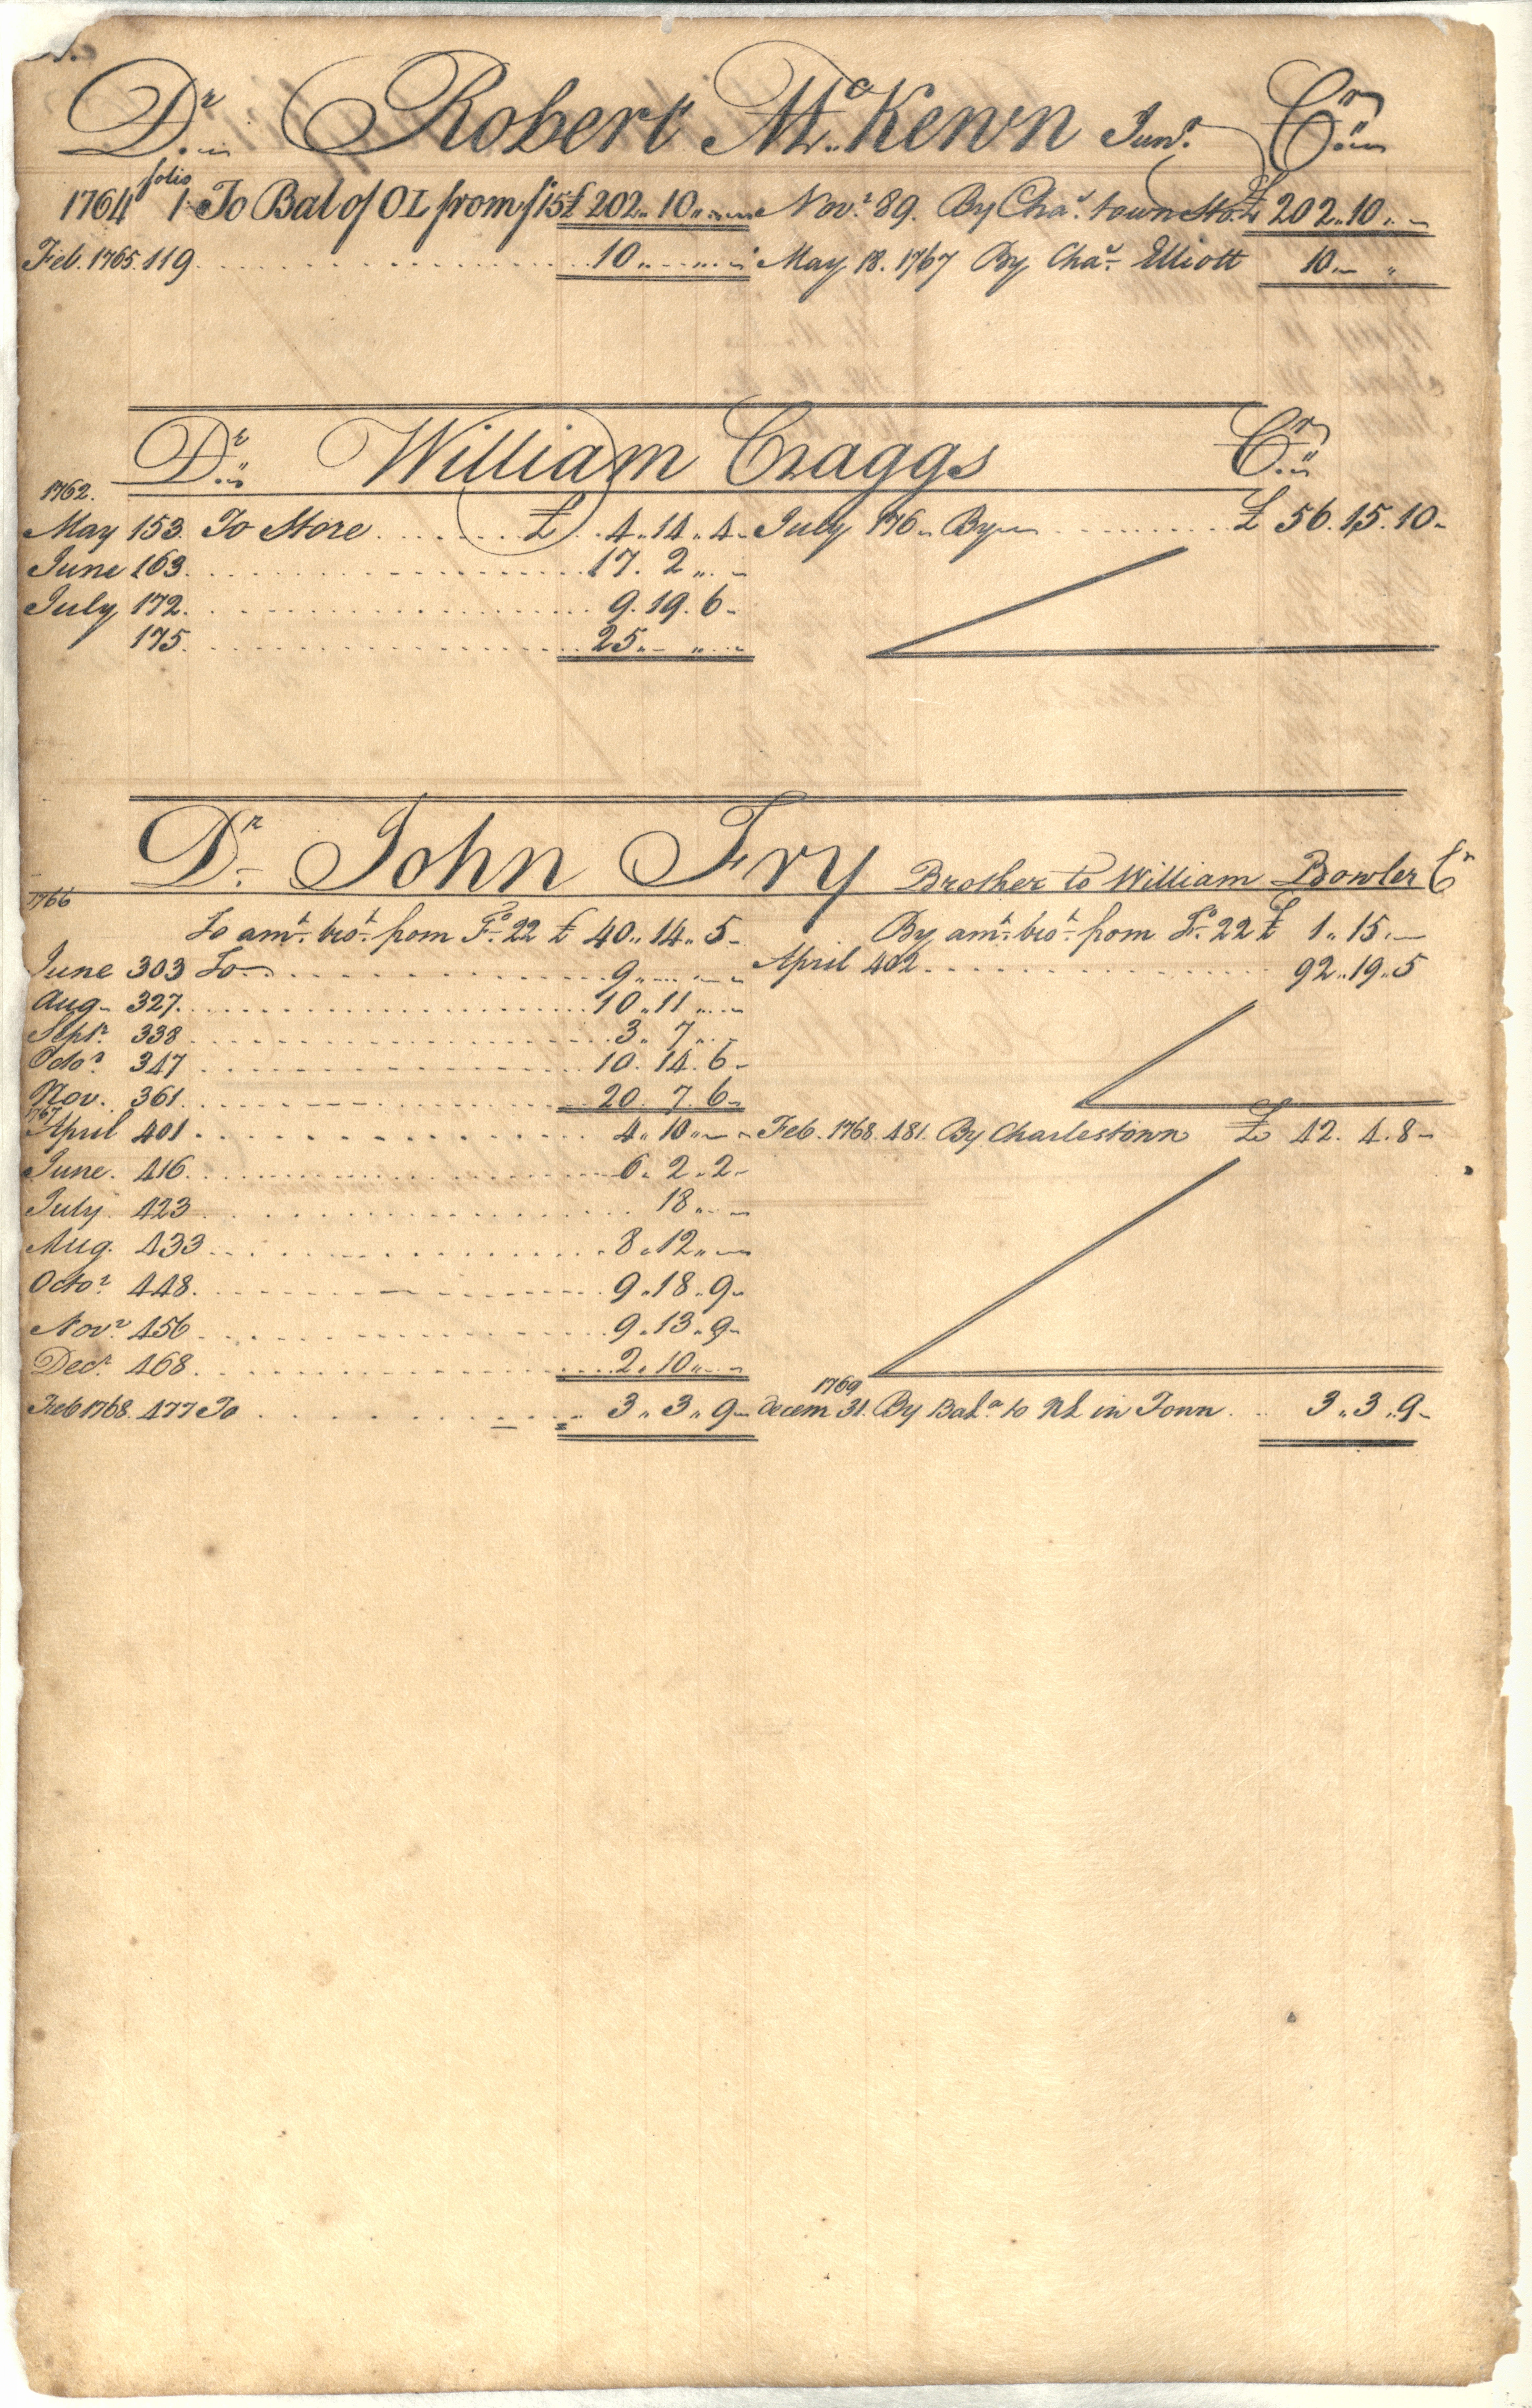 Plowden Weston's Business Ledger, page 31